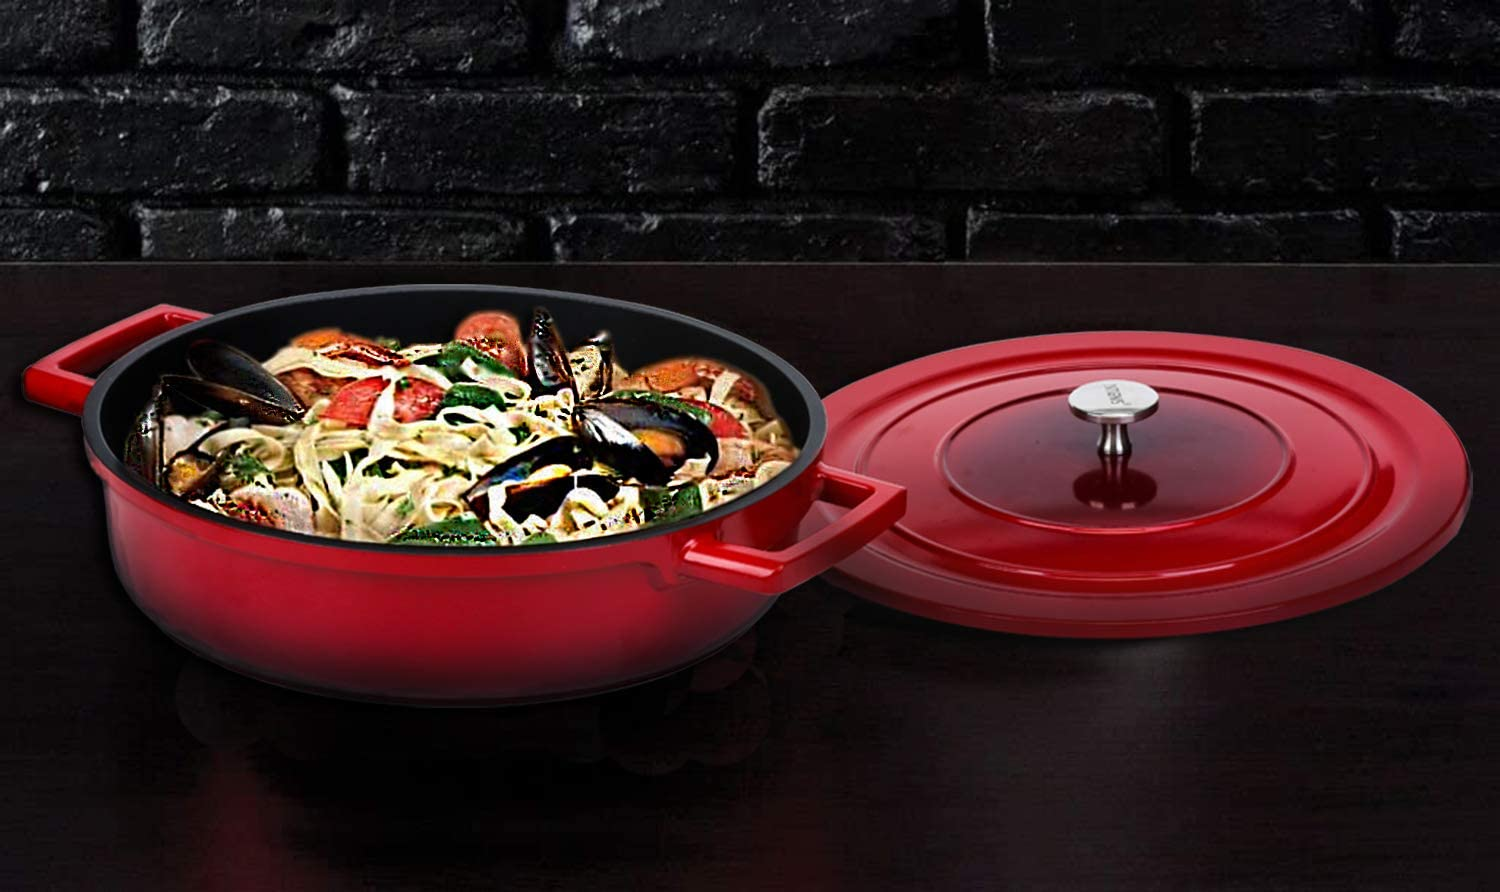 Braising Loop Handles//Silicone Handles Cainfy 4.1 Quart Cast Aluminum Dutch Oven Pot with Lid Enameled Covered Casserole Braiser Pan Round Casserole Pot Skillet Dish Utensils for Bread Baking